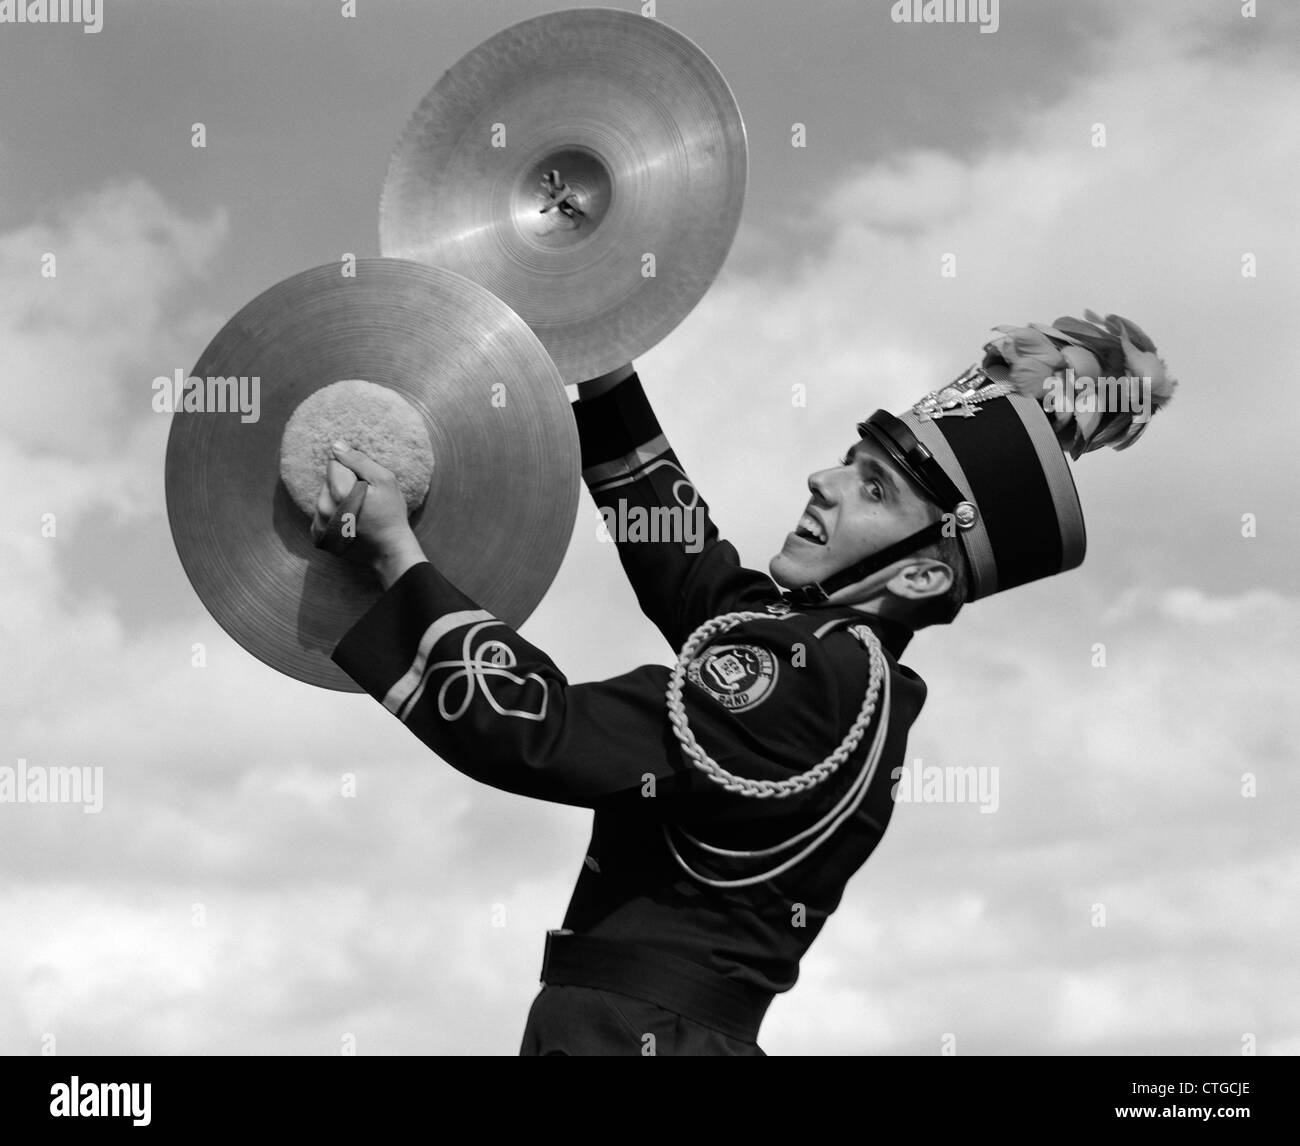 1960s PORTRAIT OF BOY IN BAND UNIFORM PLAYING INSTRUMENT CYMBALS OUTDOORS - Stock Image